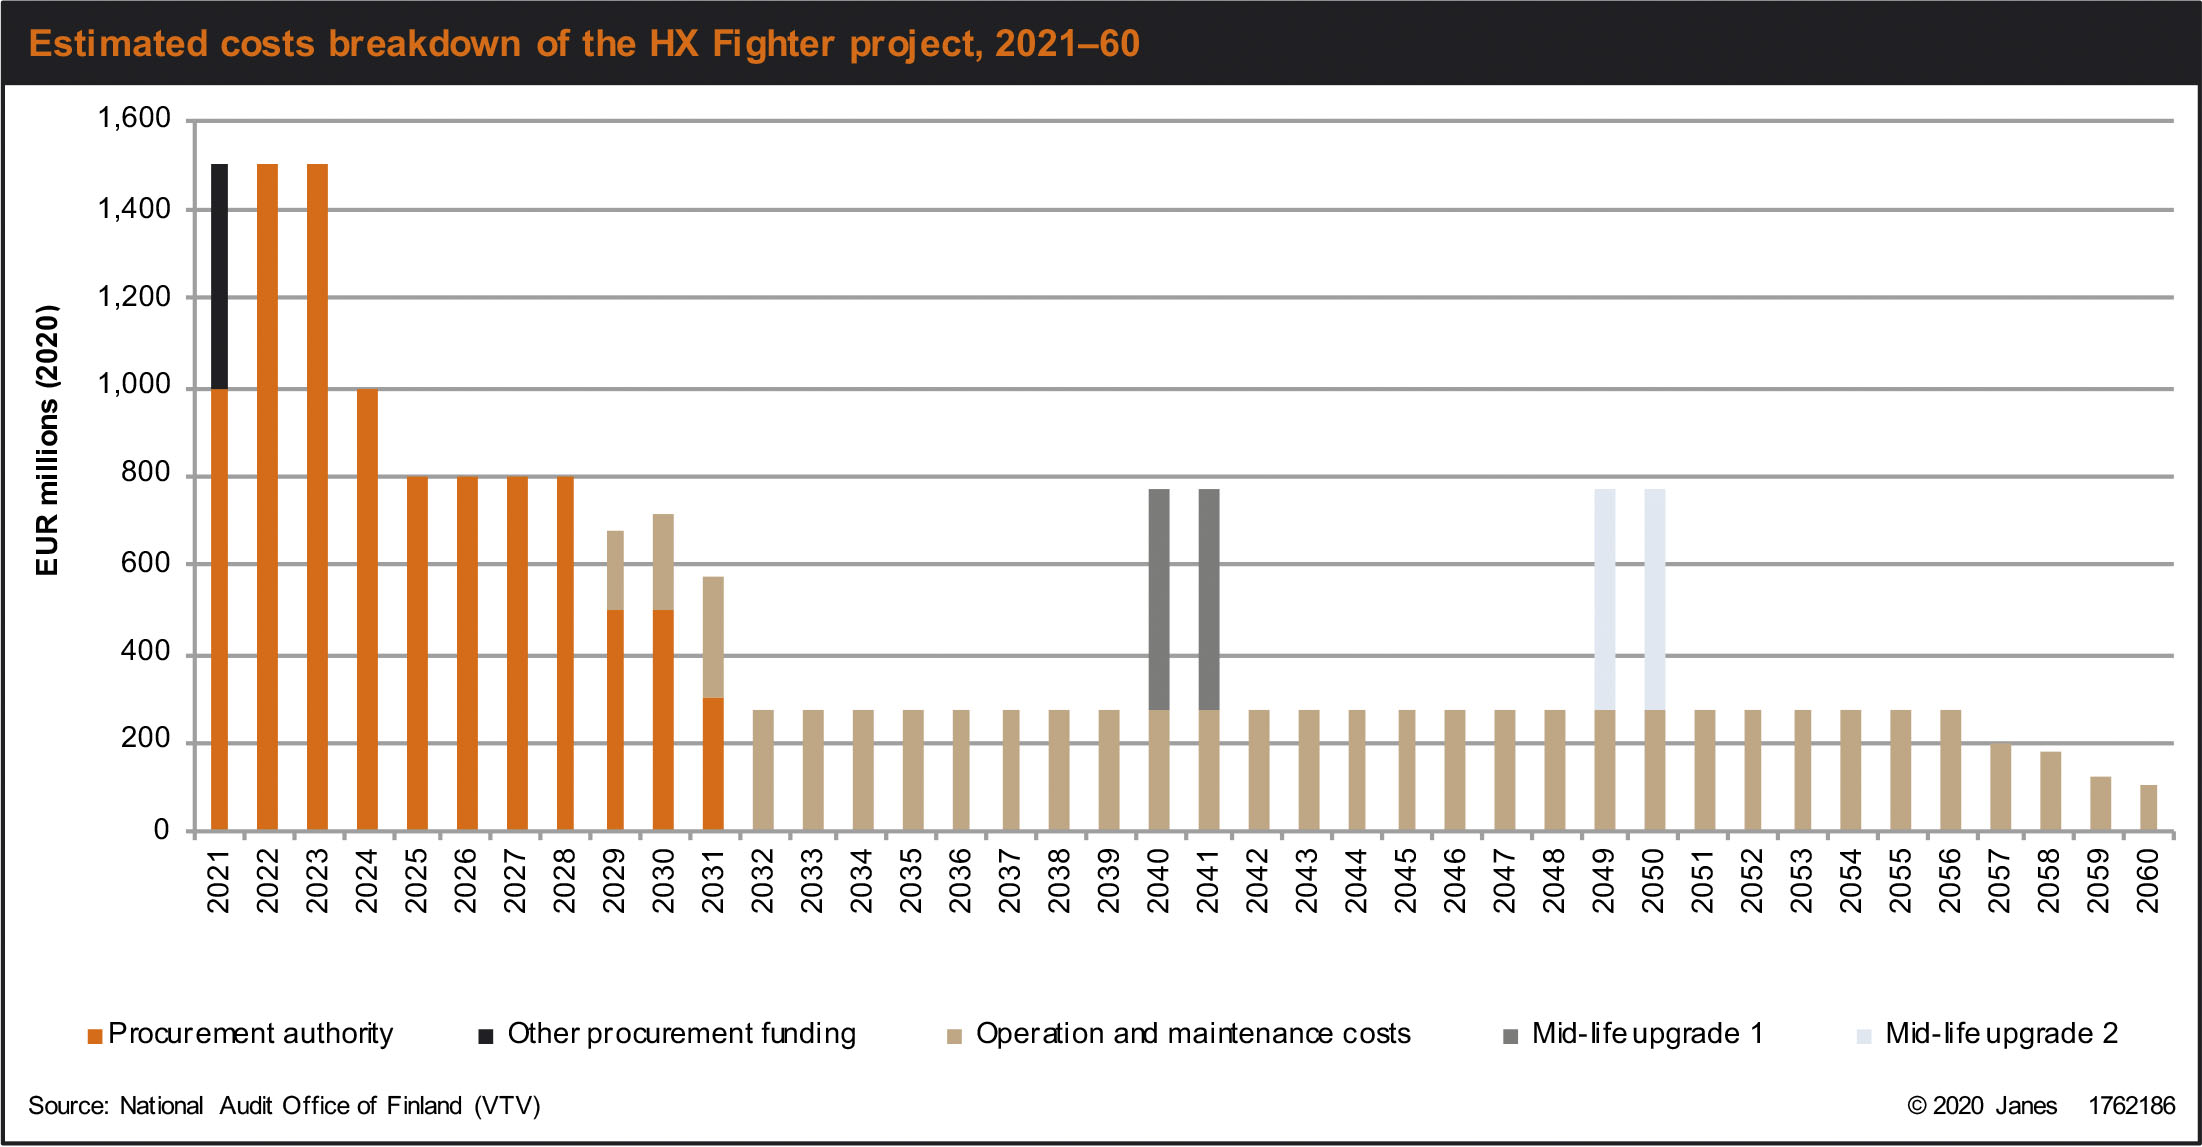 Estimated cost breakdown of the HX Fighter project, 2021-60. (National Audit Office of Finland/Janes)